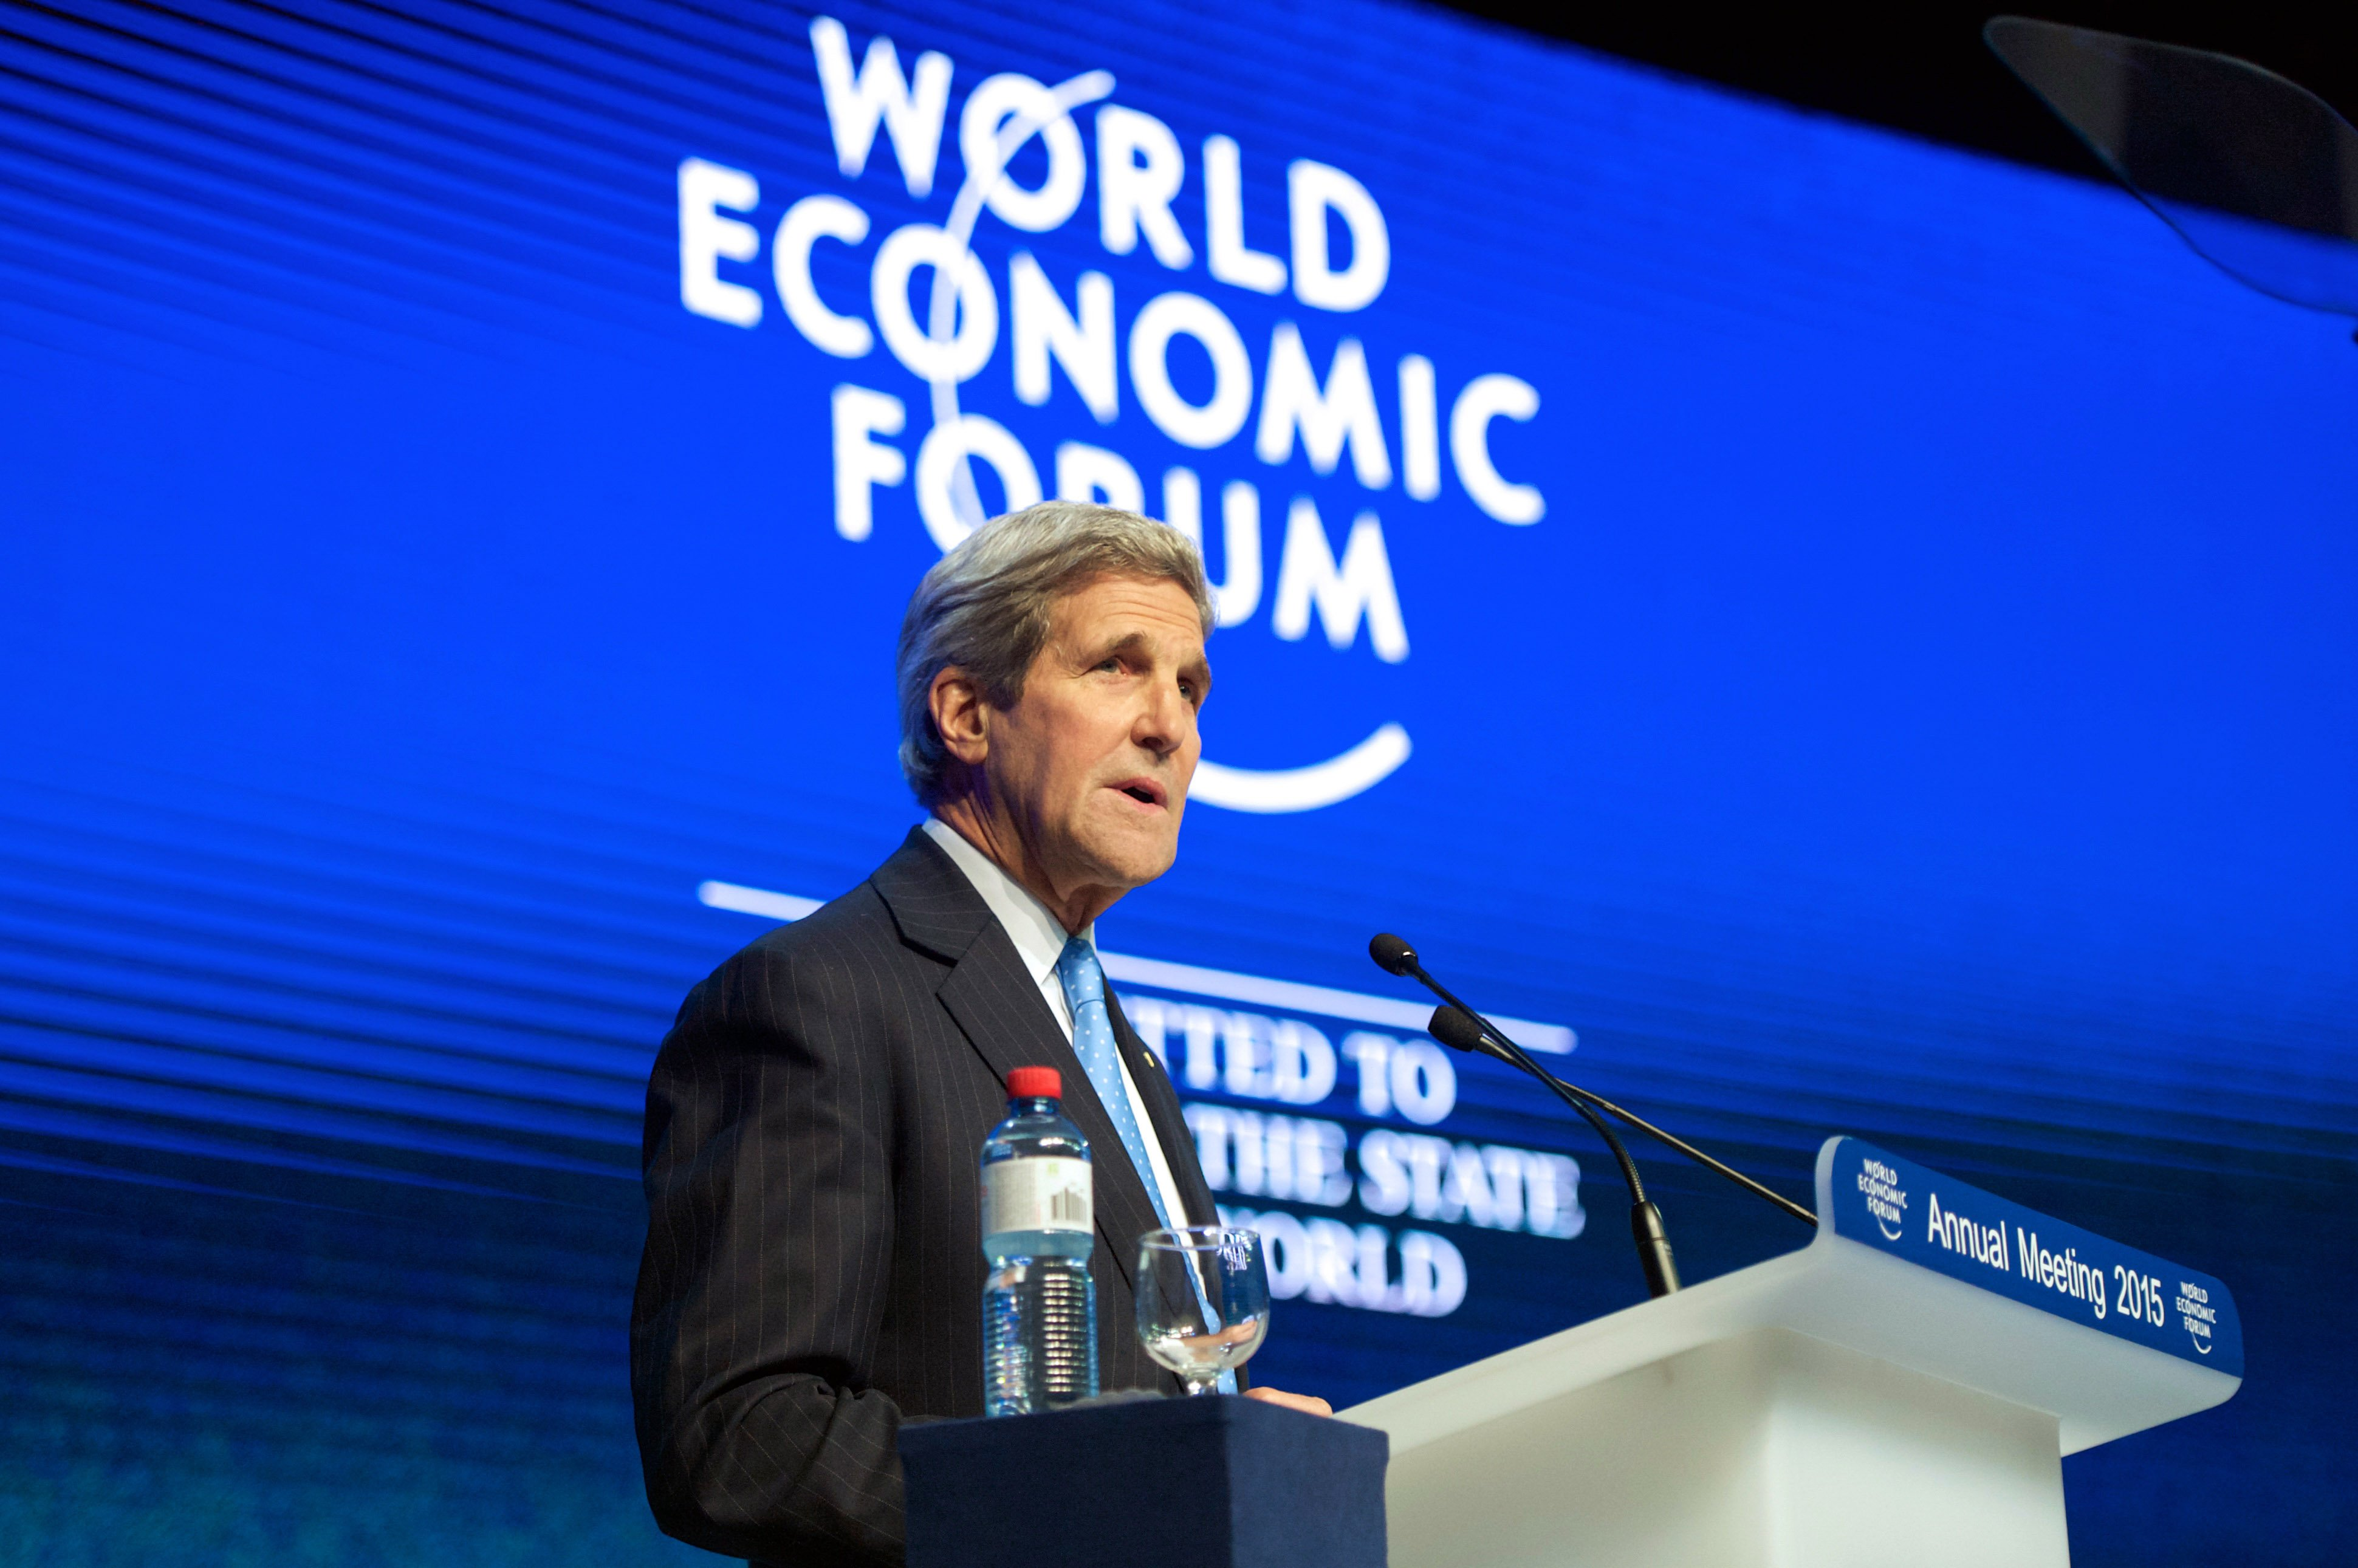 Secretary of State John Kerry delivers a speech about violent extremism to the audience at the World Economic Forum in Davos, Switzerland on Jan. 23, 2015.